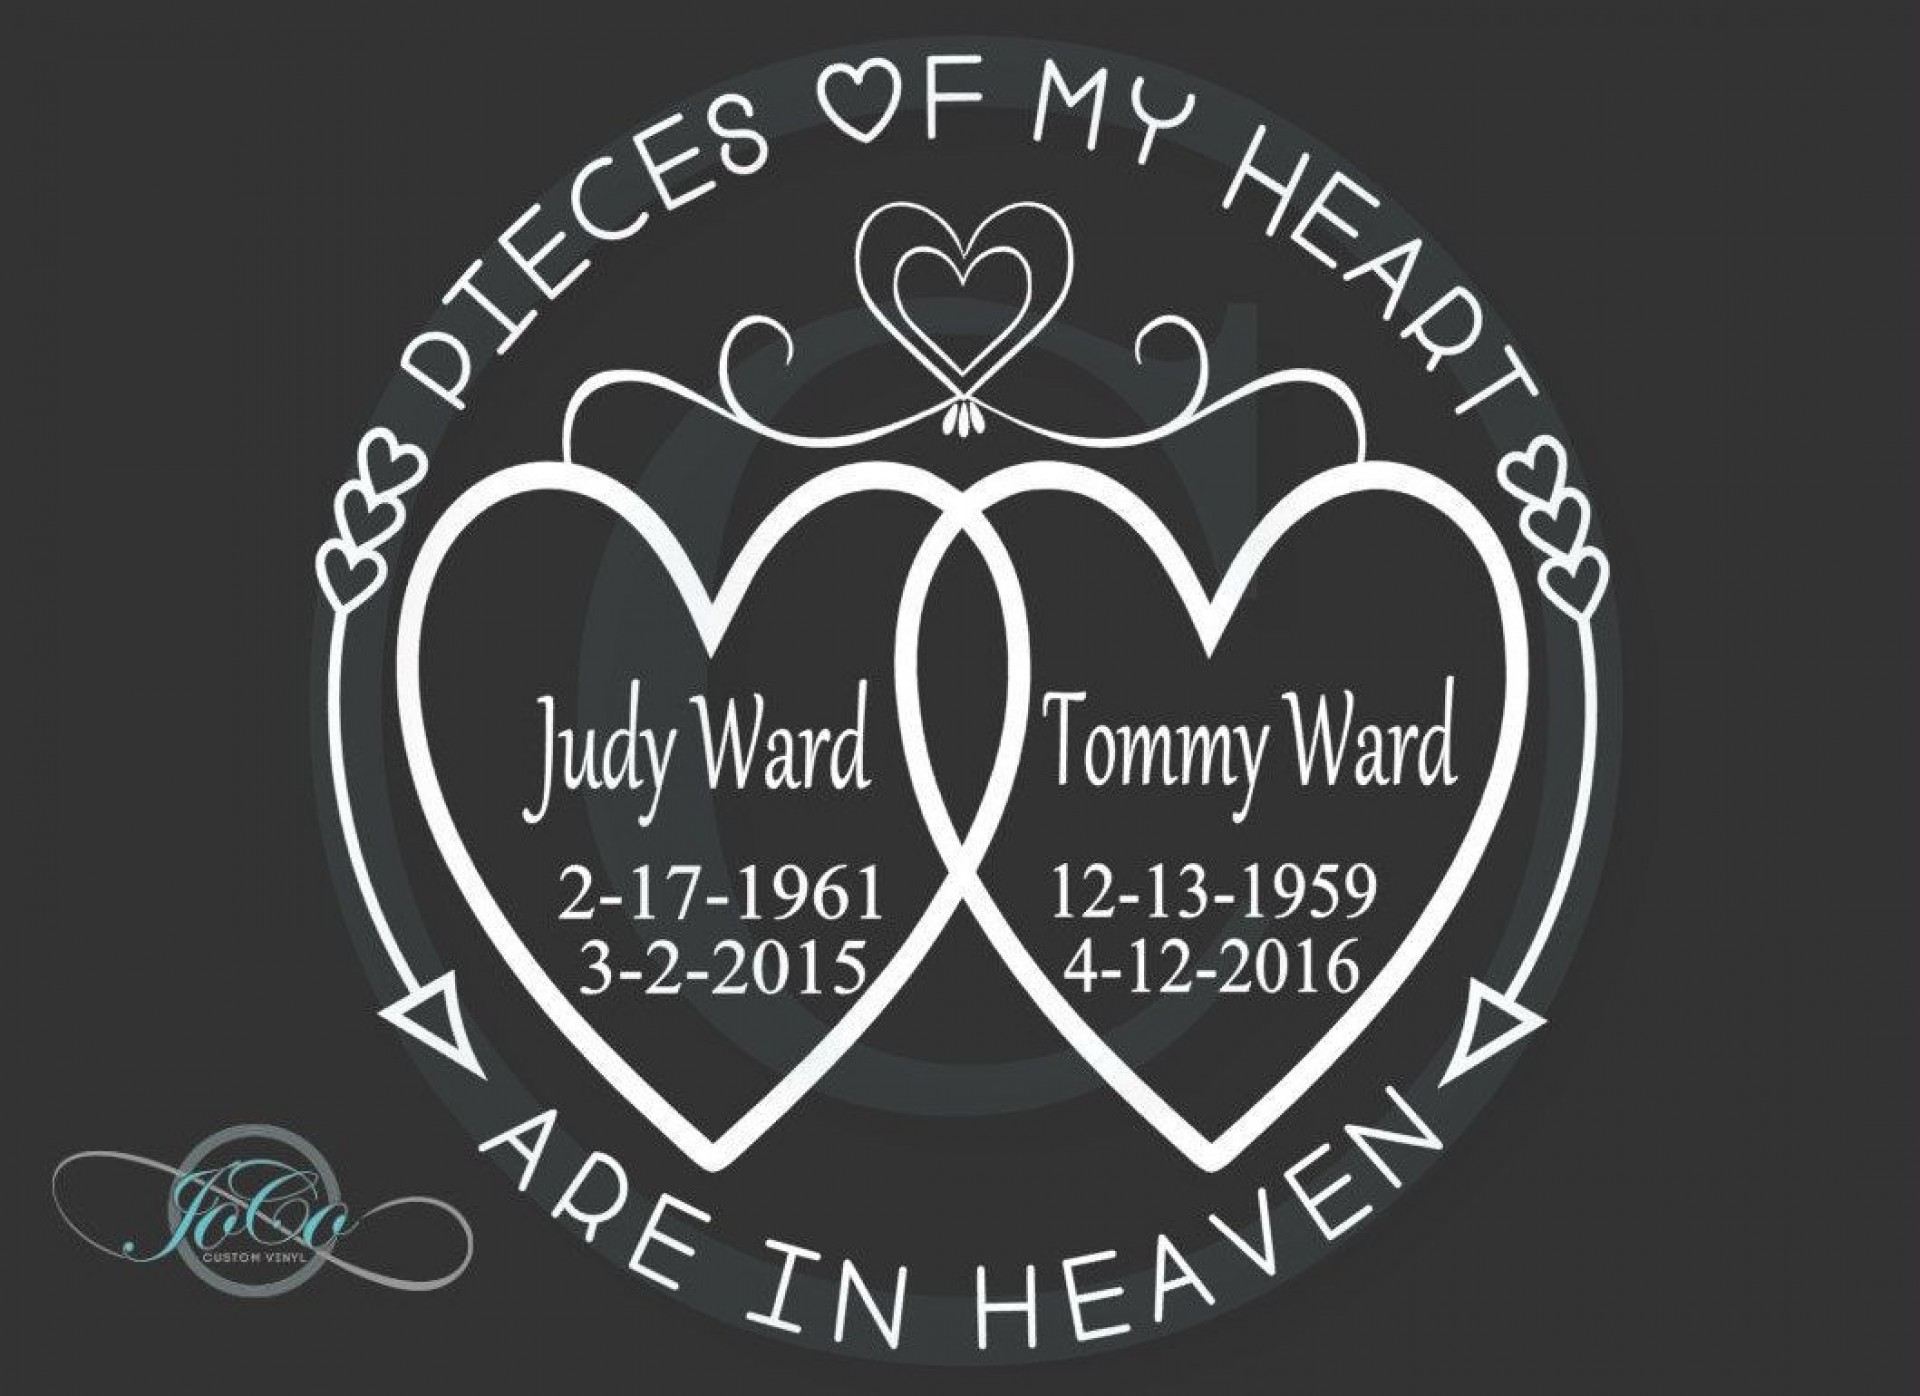 004 Imposing In Loving Memory Decal Template Picture  Templates1920